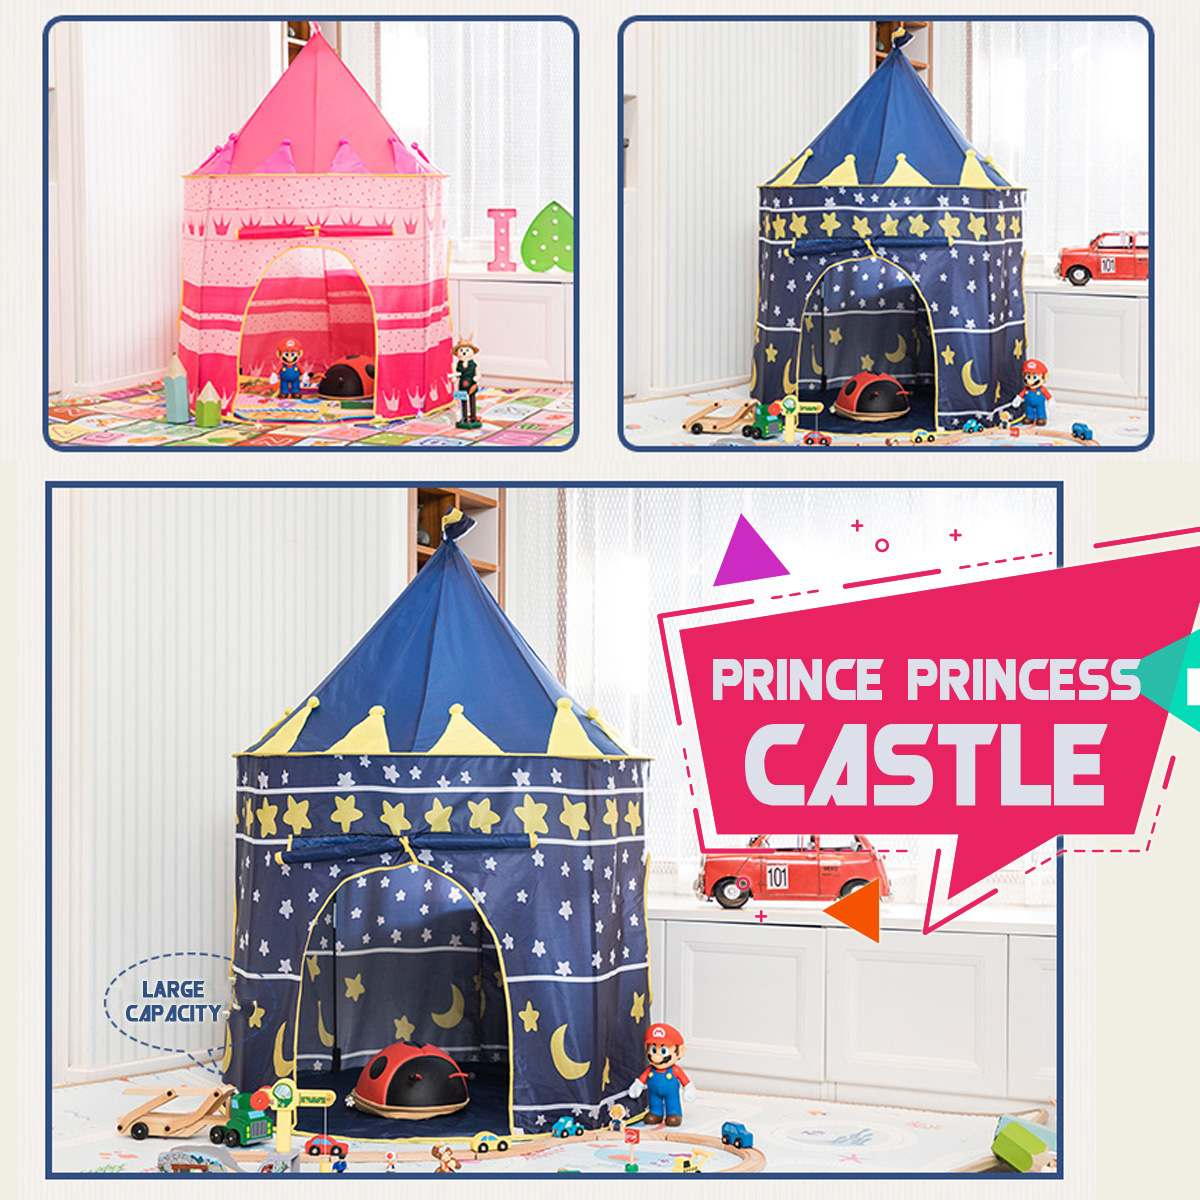 Portable Princess Prince Castle 105x135cm Kid Tent House Present Hang Flag Children Teepee Tent Play Tent Birthday Christma Gift